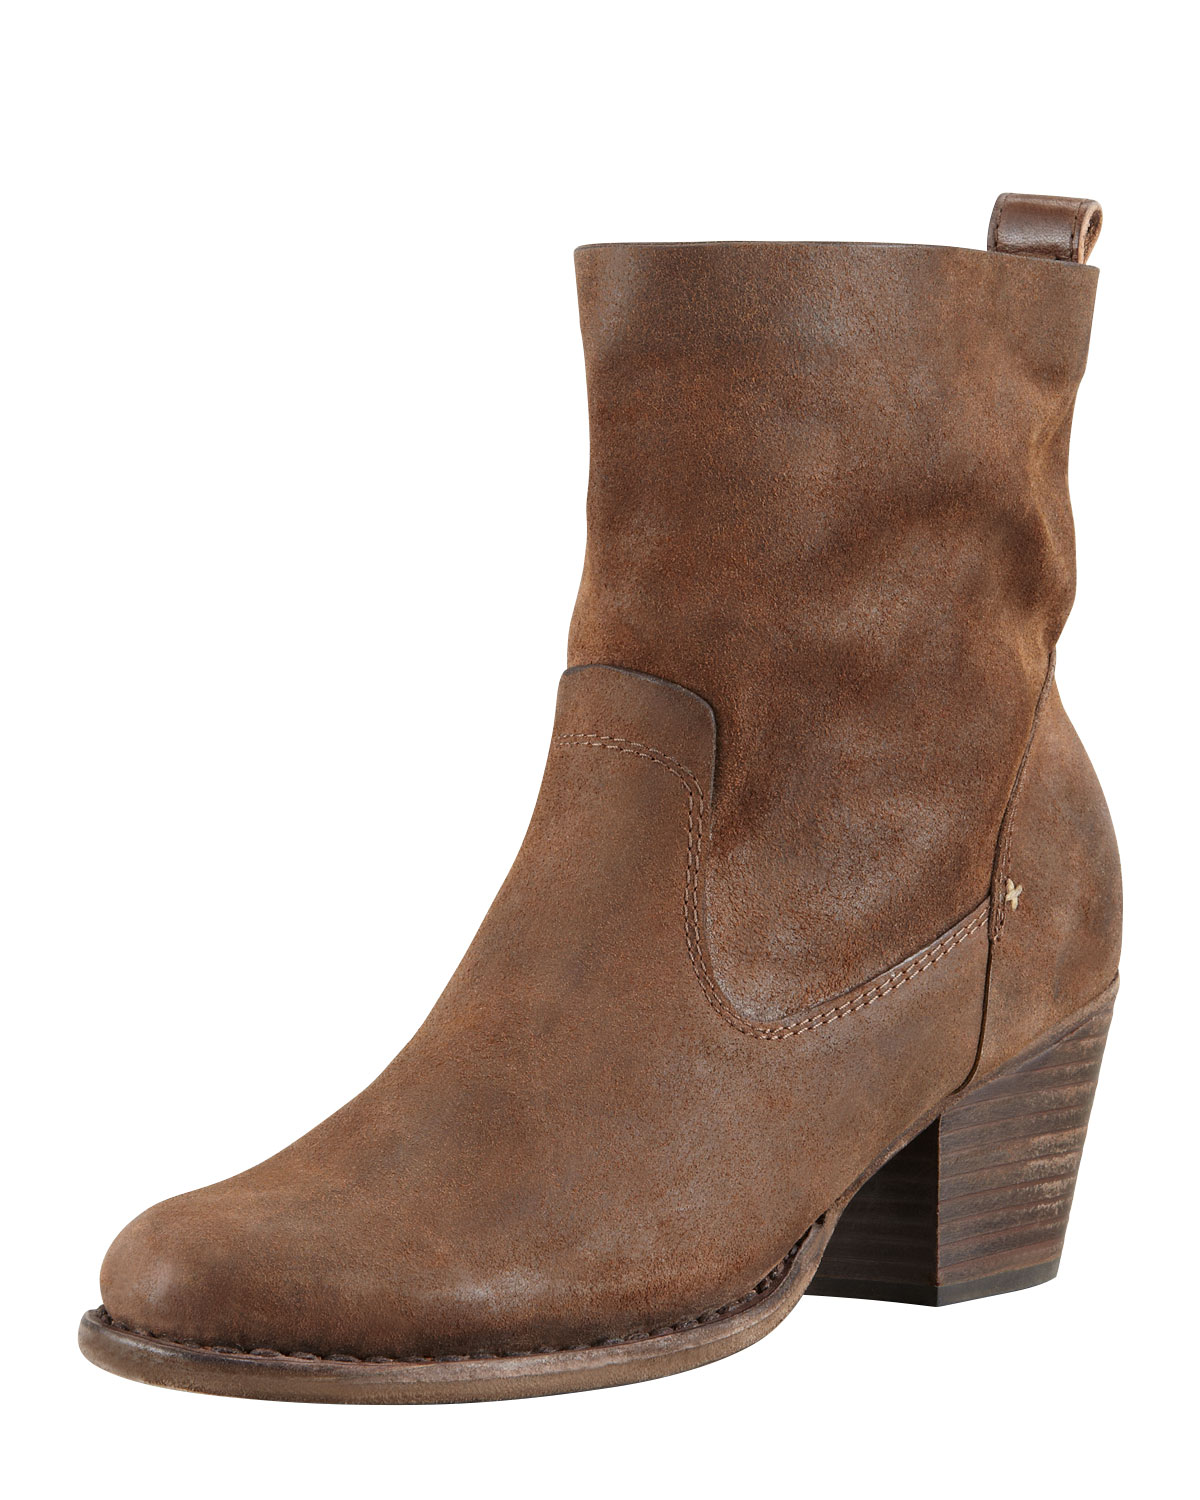 Brown Ankle Boots For Women jbY0JaT7